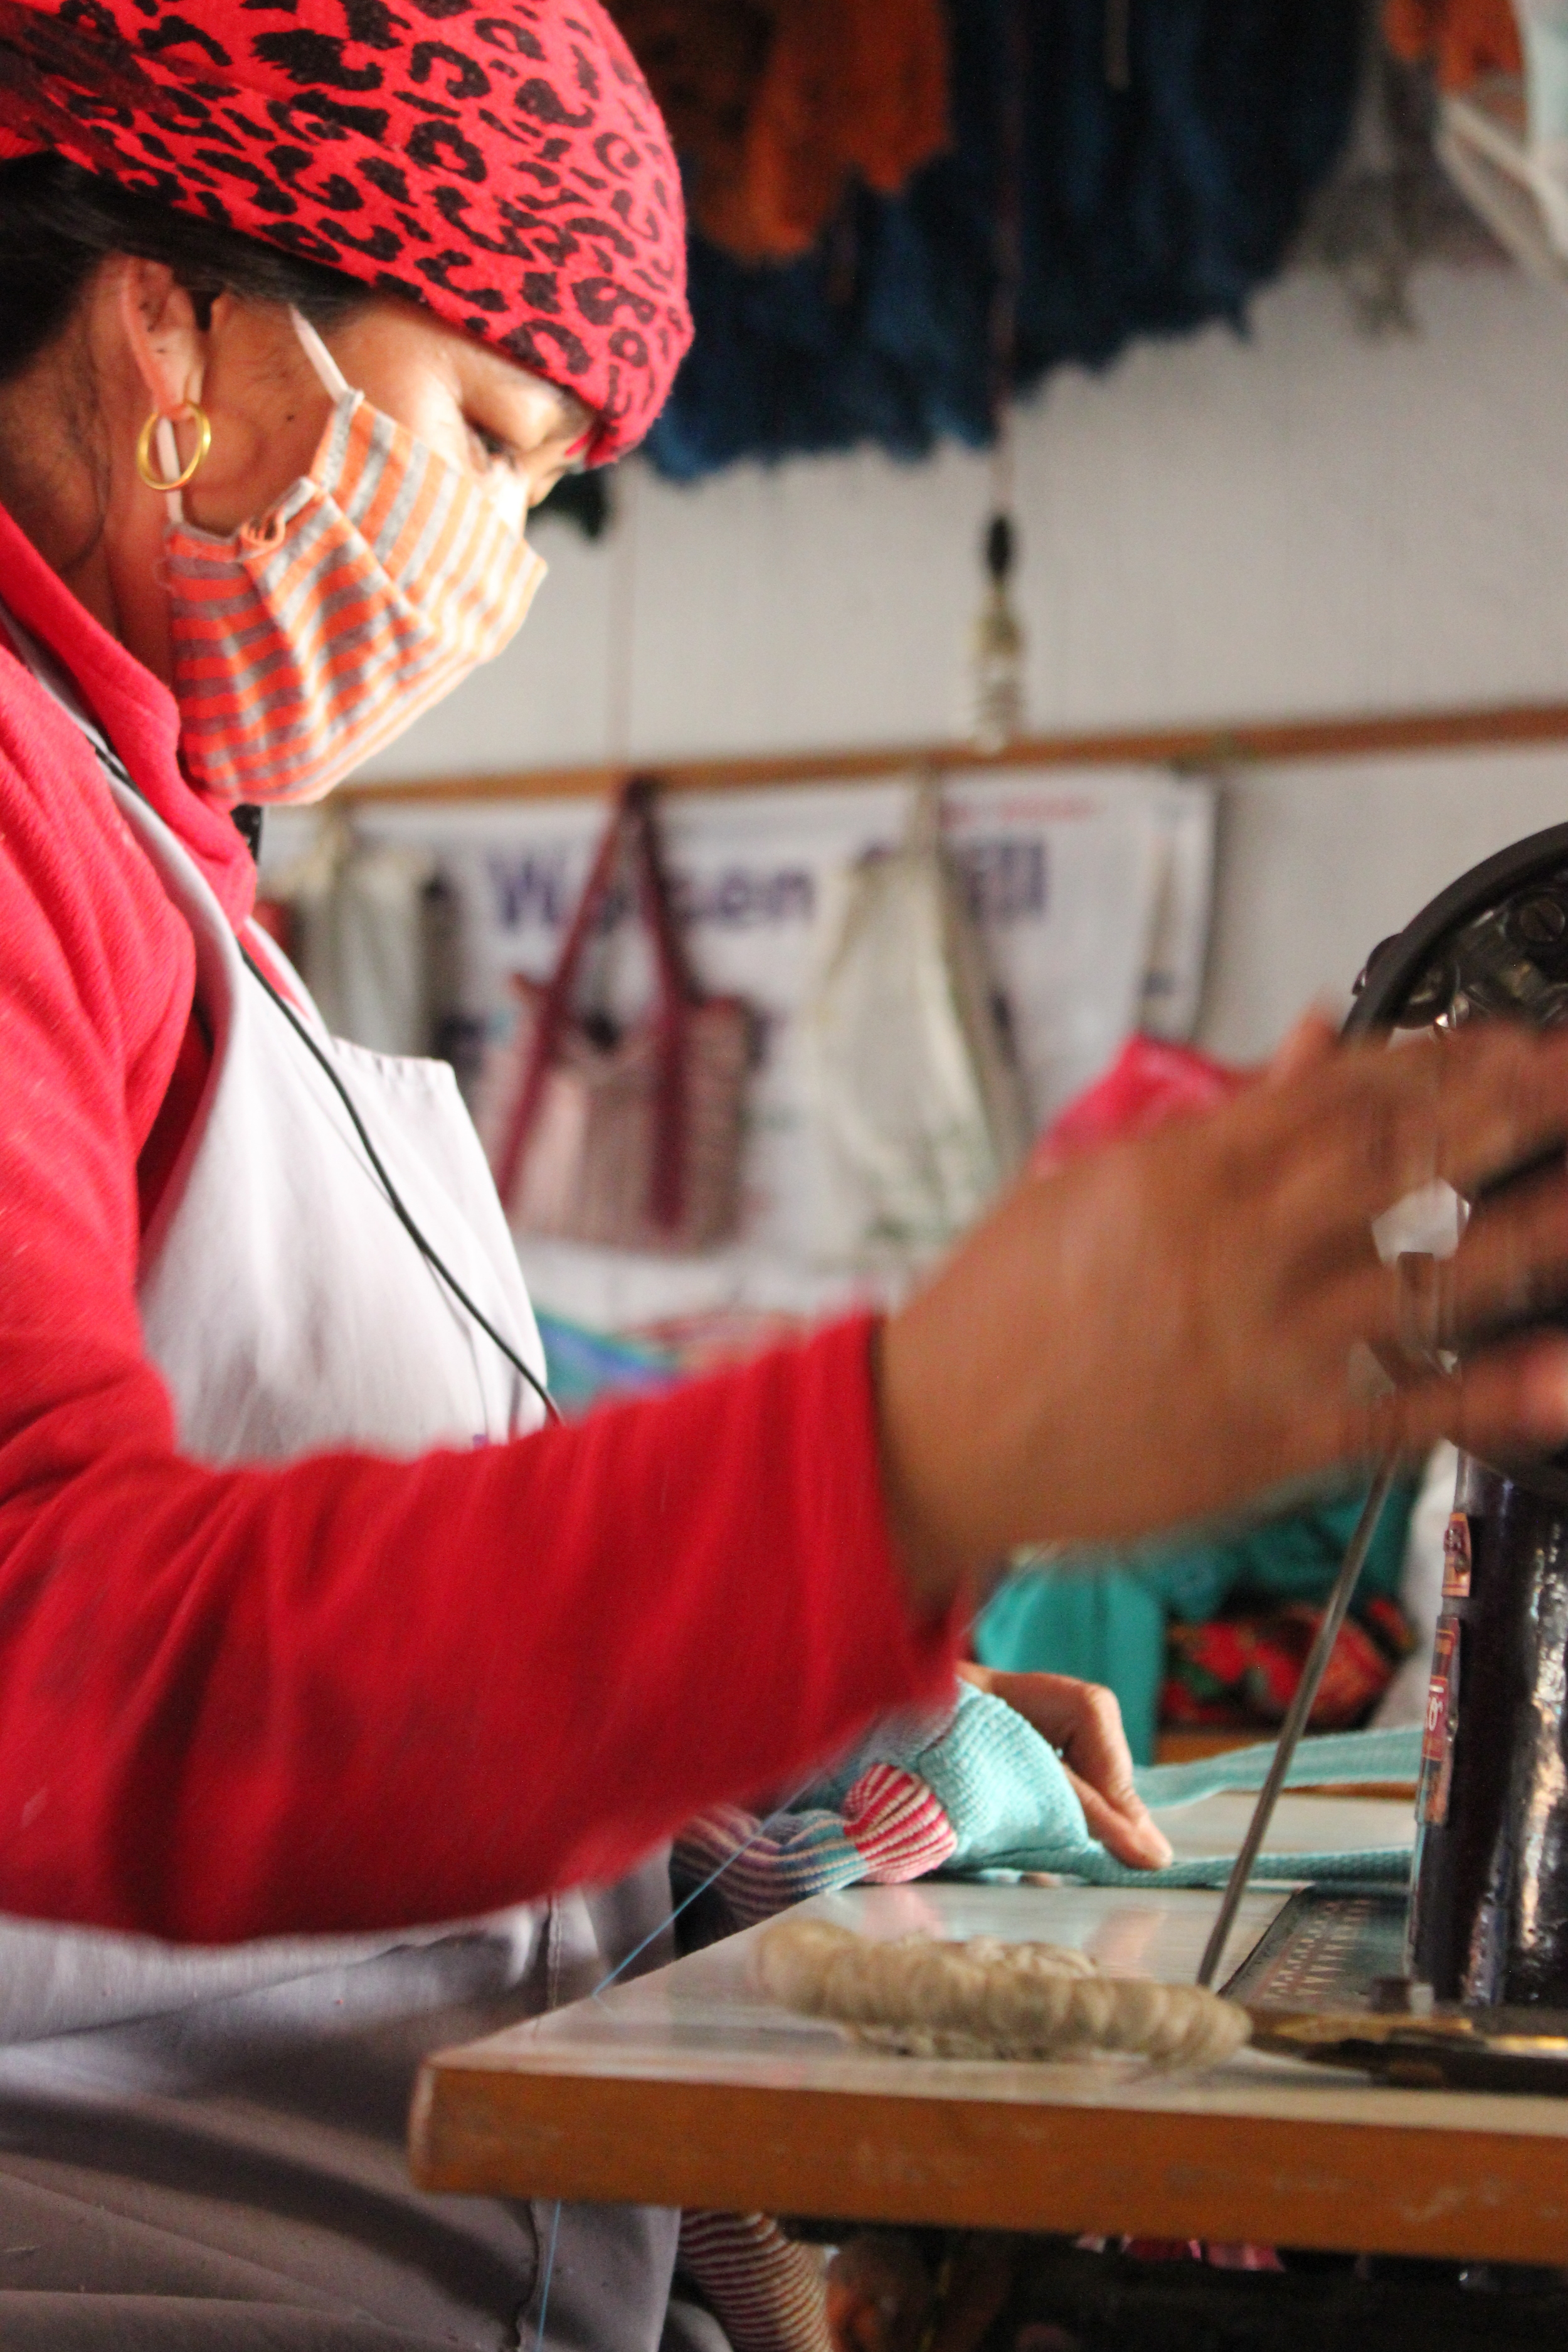 Sita working at the sowing machine in Nepal.